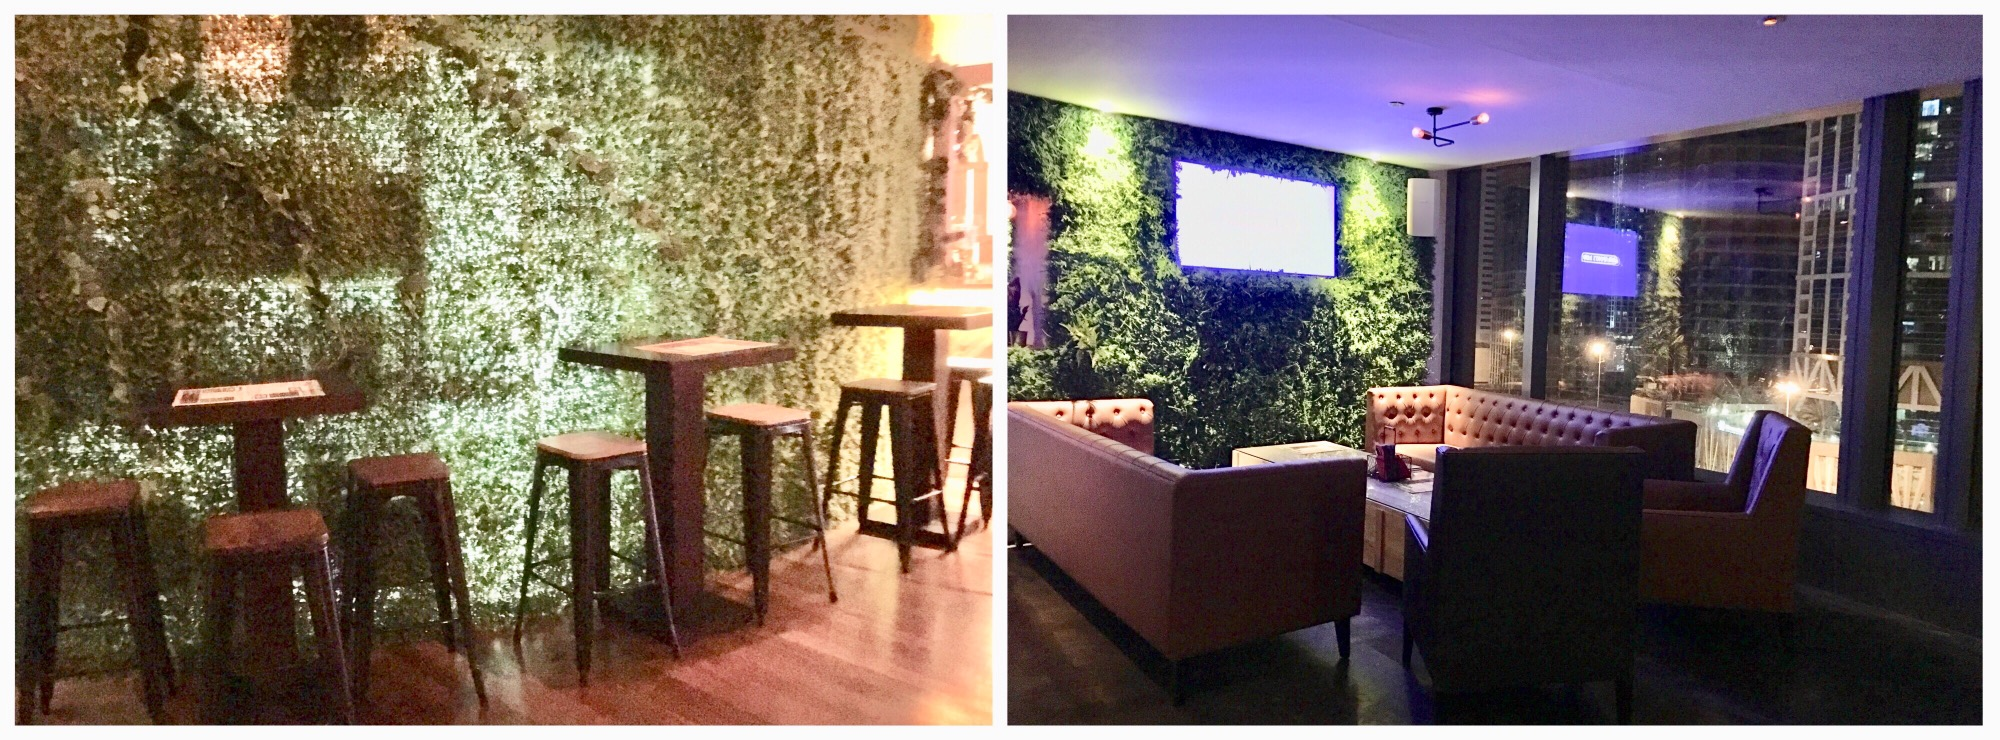 On Thursday Evening, I Was Back At My Favorite Media One Hotel In Dubai  Media City And This Time To Check Out Garden On 8 That Is Situated In The  8th Floor.